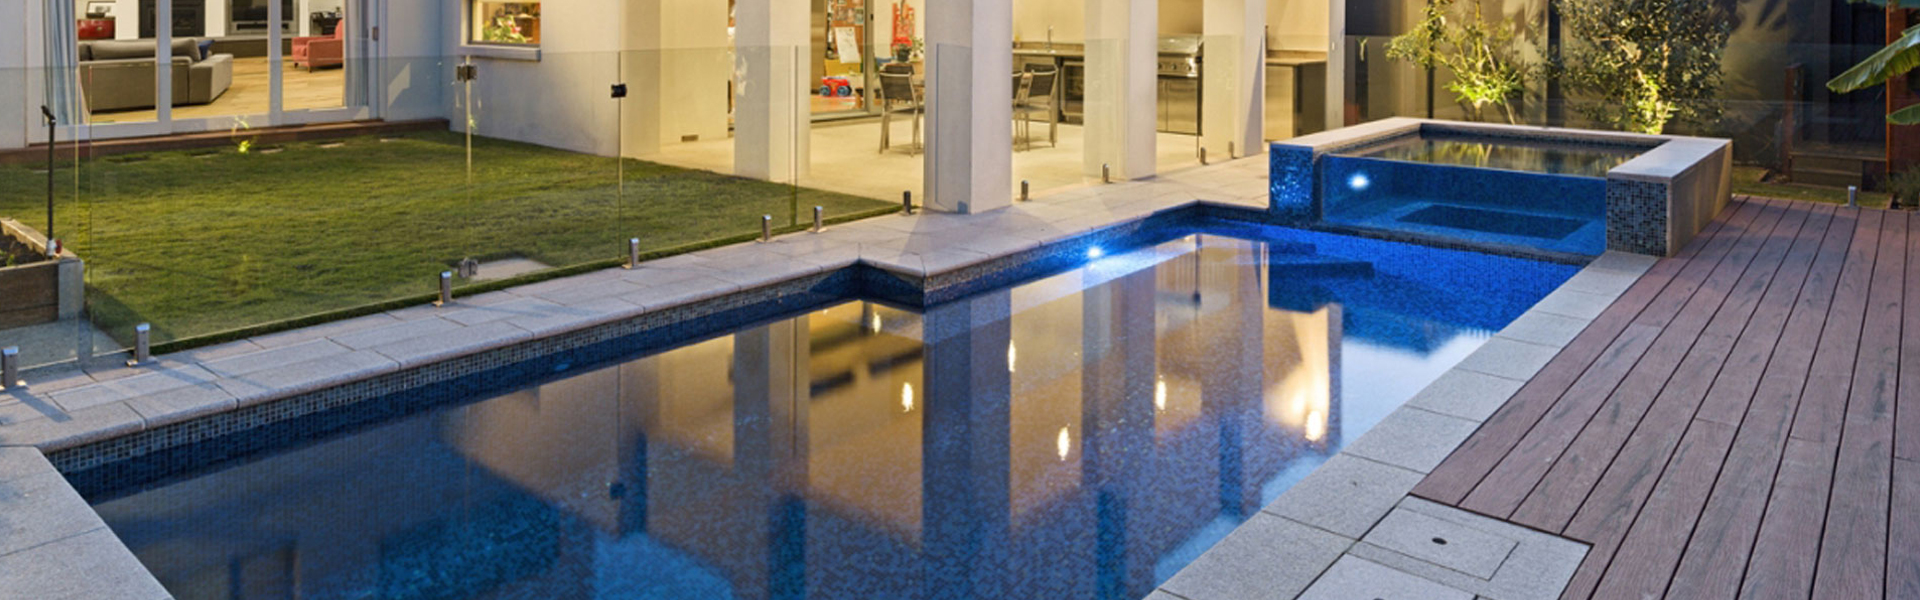 Swimming Pool Renovations Melbourne Pool Tiling Pool Equipment